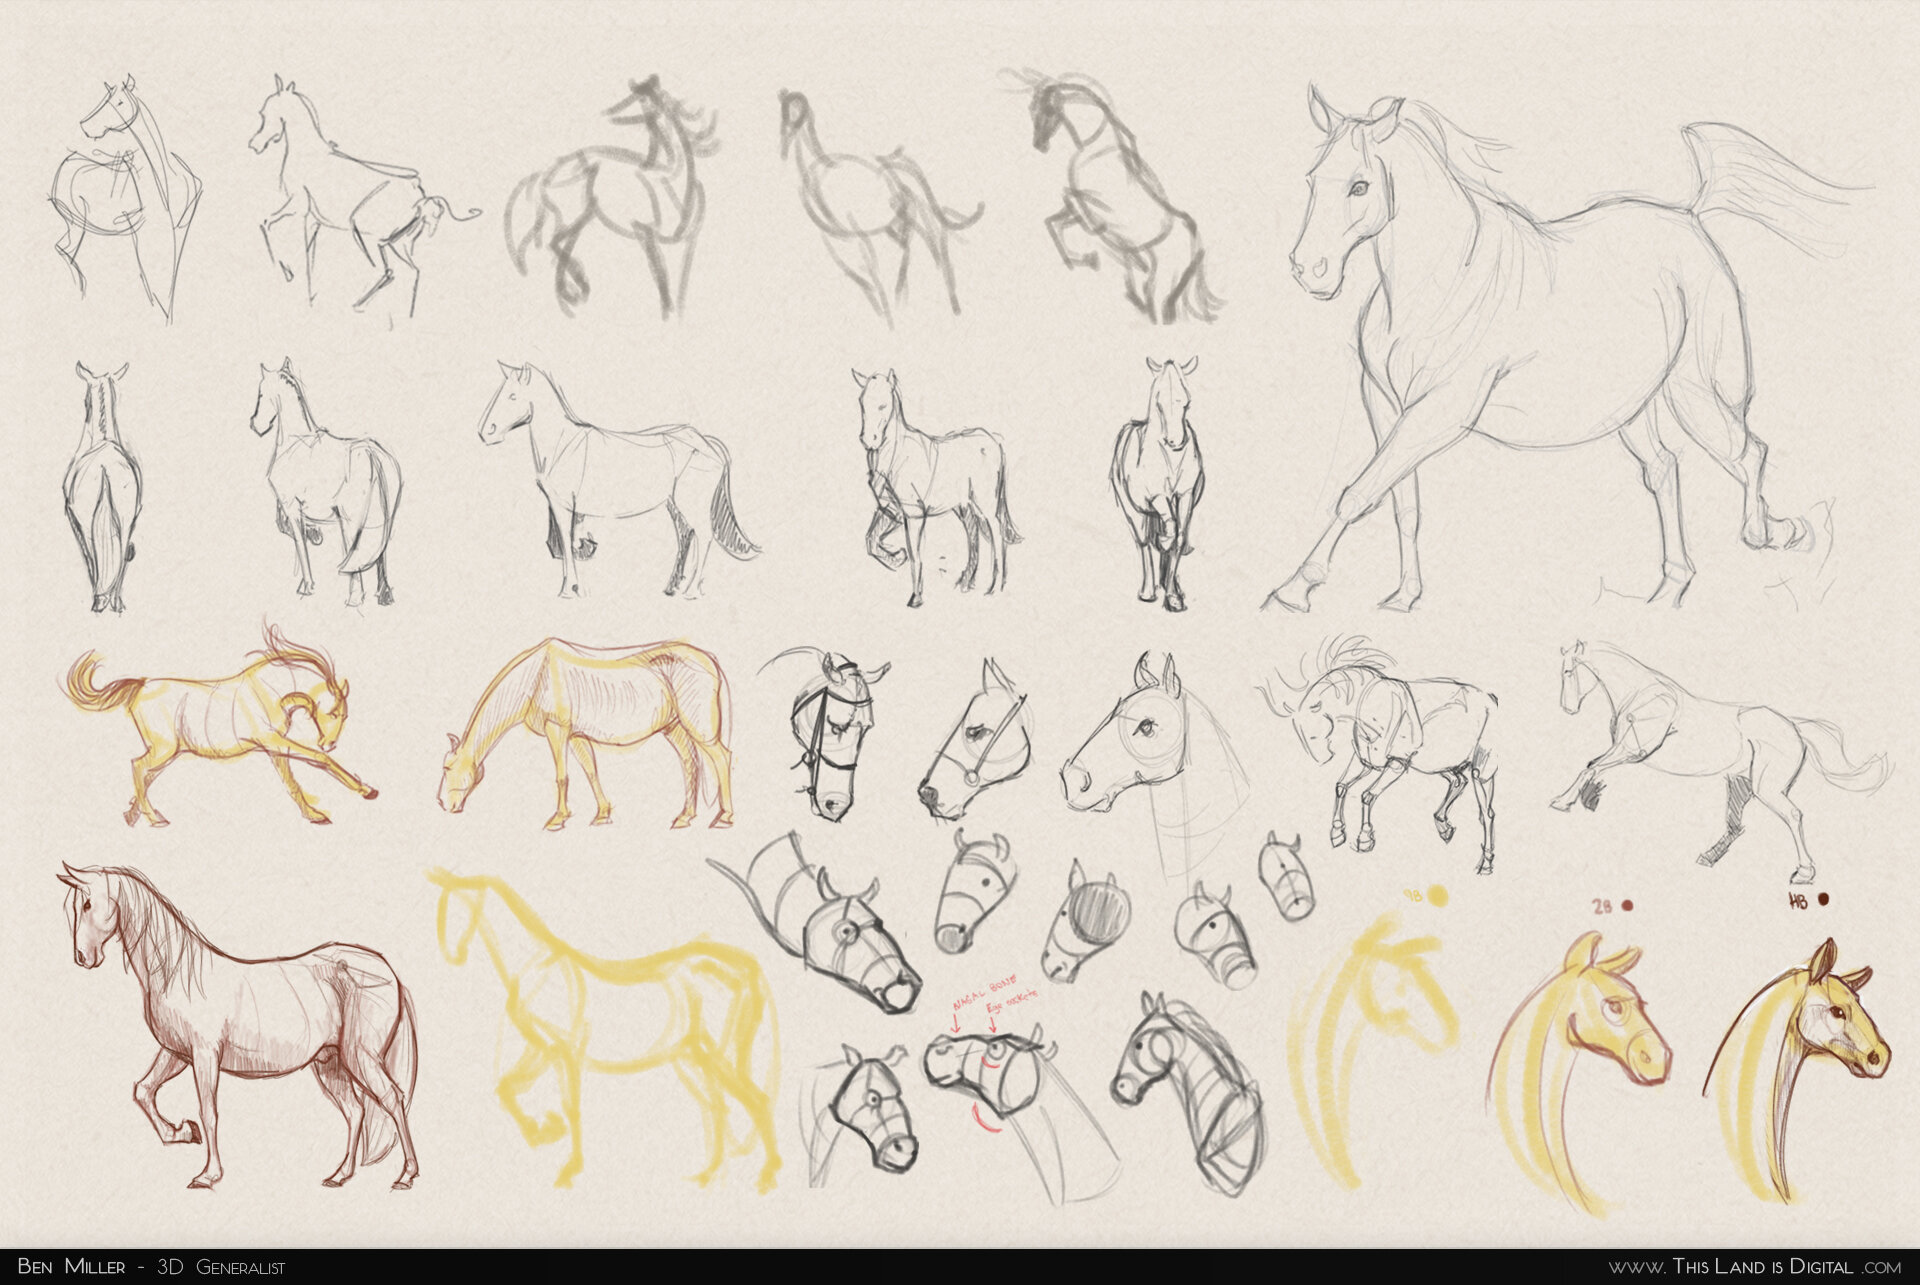 TLiD_WeddingSculpture-Sketches_03-Gestures.jpg